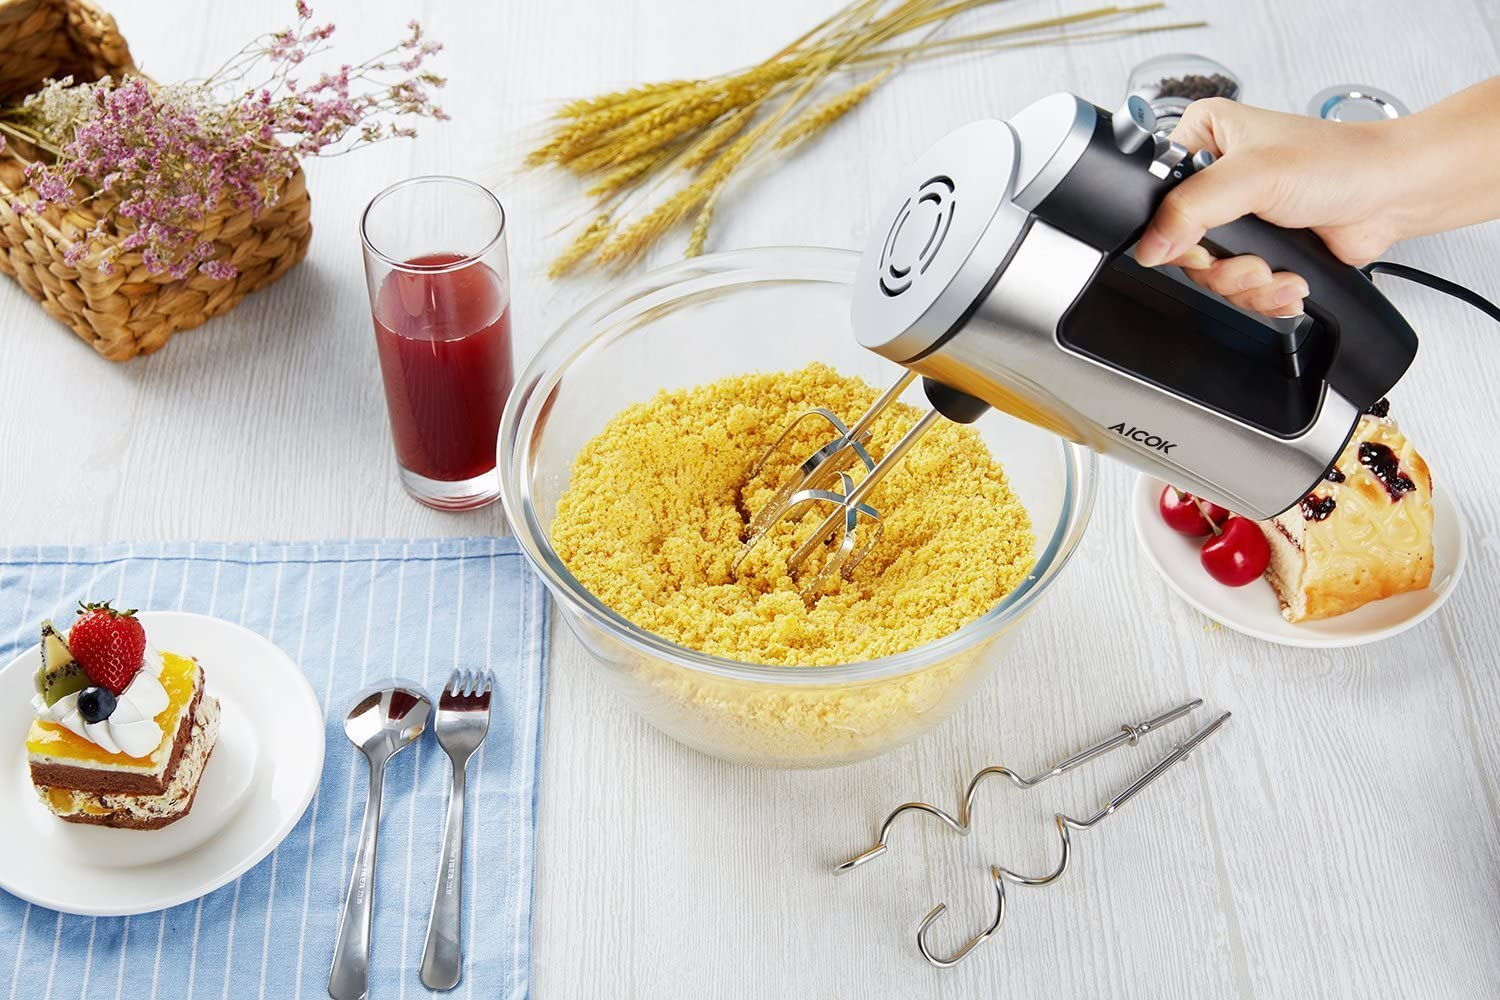 Aicok Hand Mixer 6 Speed Classic Stainless Steel Mixer view